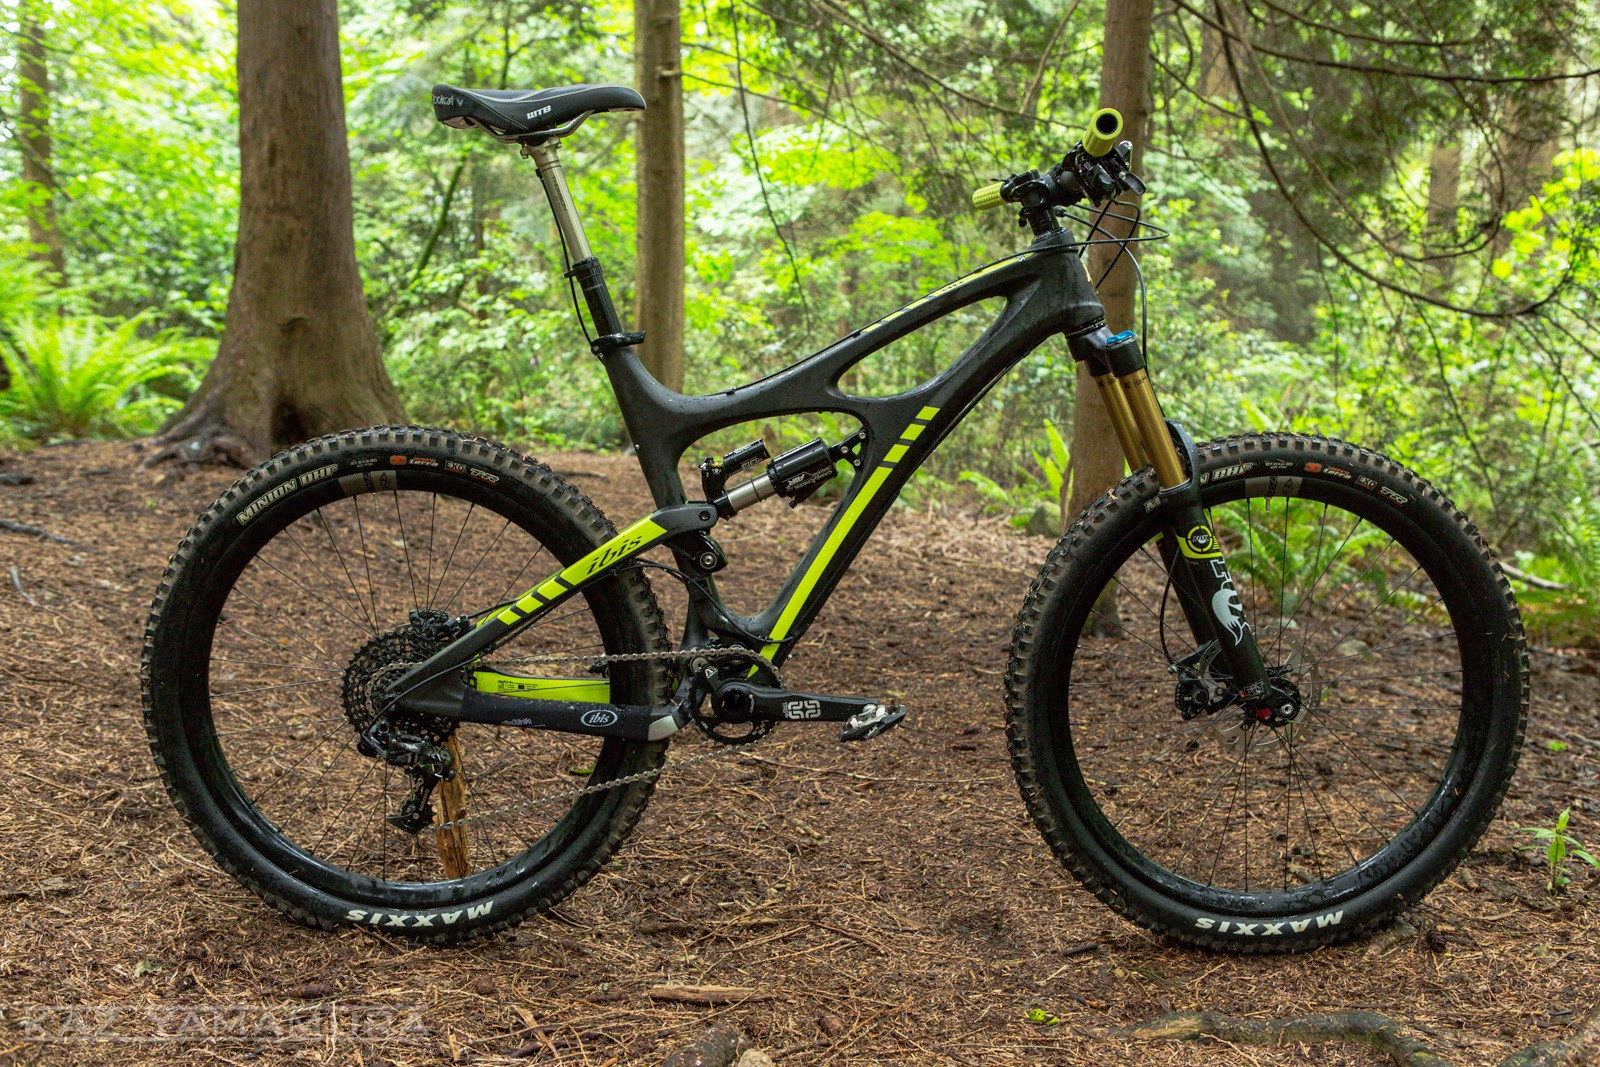 Gasp! This isn't a 160mm 650b bike! The Mojo HDR 650 has 130mm of rear travel and this model is spec'ed with a 140mm Fox 34 CTD. Ibis tells us the HDR is made with a new layup process that allows for longer carbon fibres. Previously pieces of the frame were laid up and then attached once the layup was complete. Shorter fibres aren't as strong and joints are heavy. As a result, Ibis tells us the bike is now just as stiff, stronger and half a pound lighter.